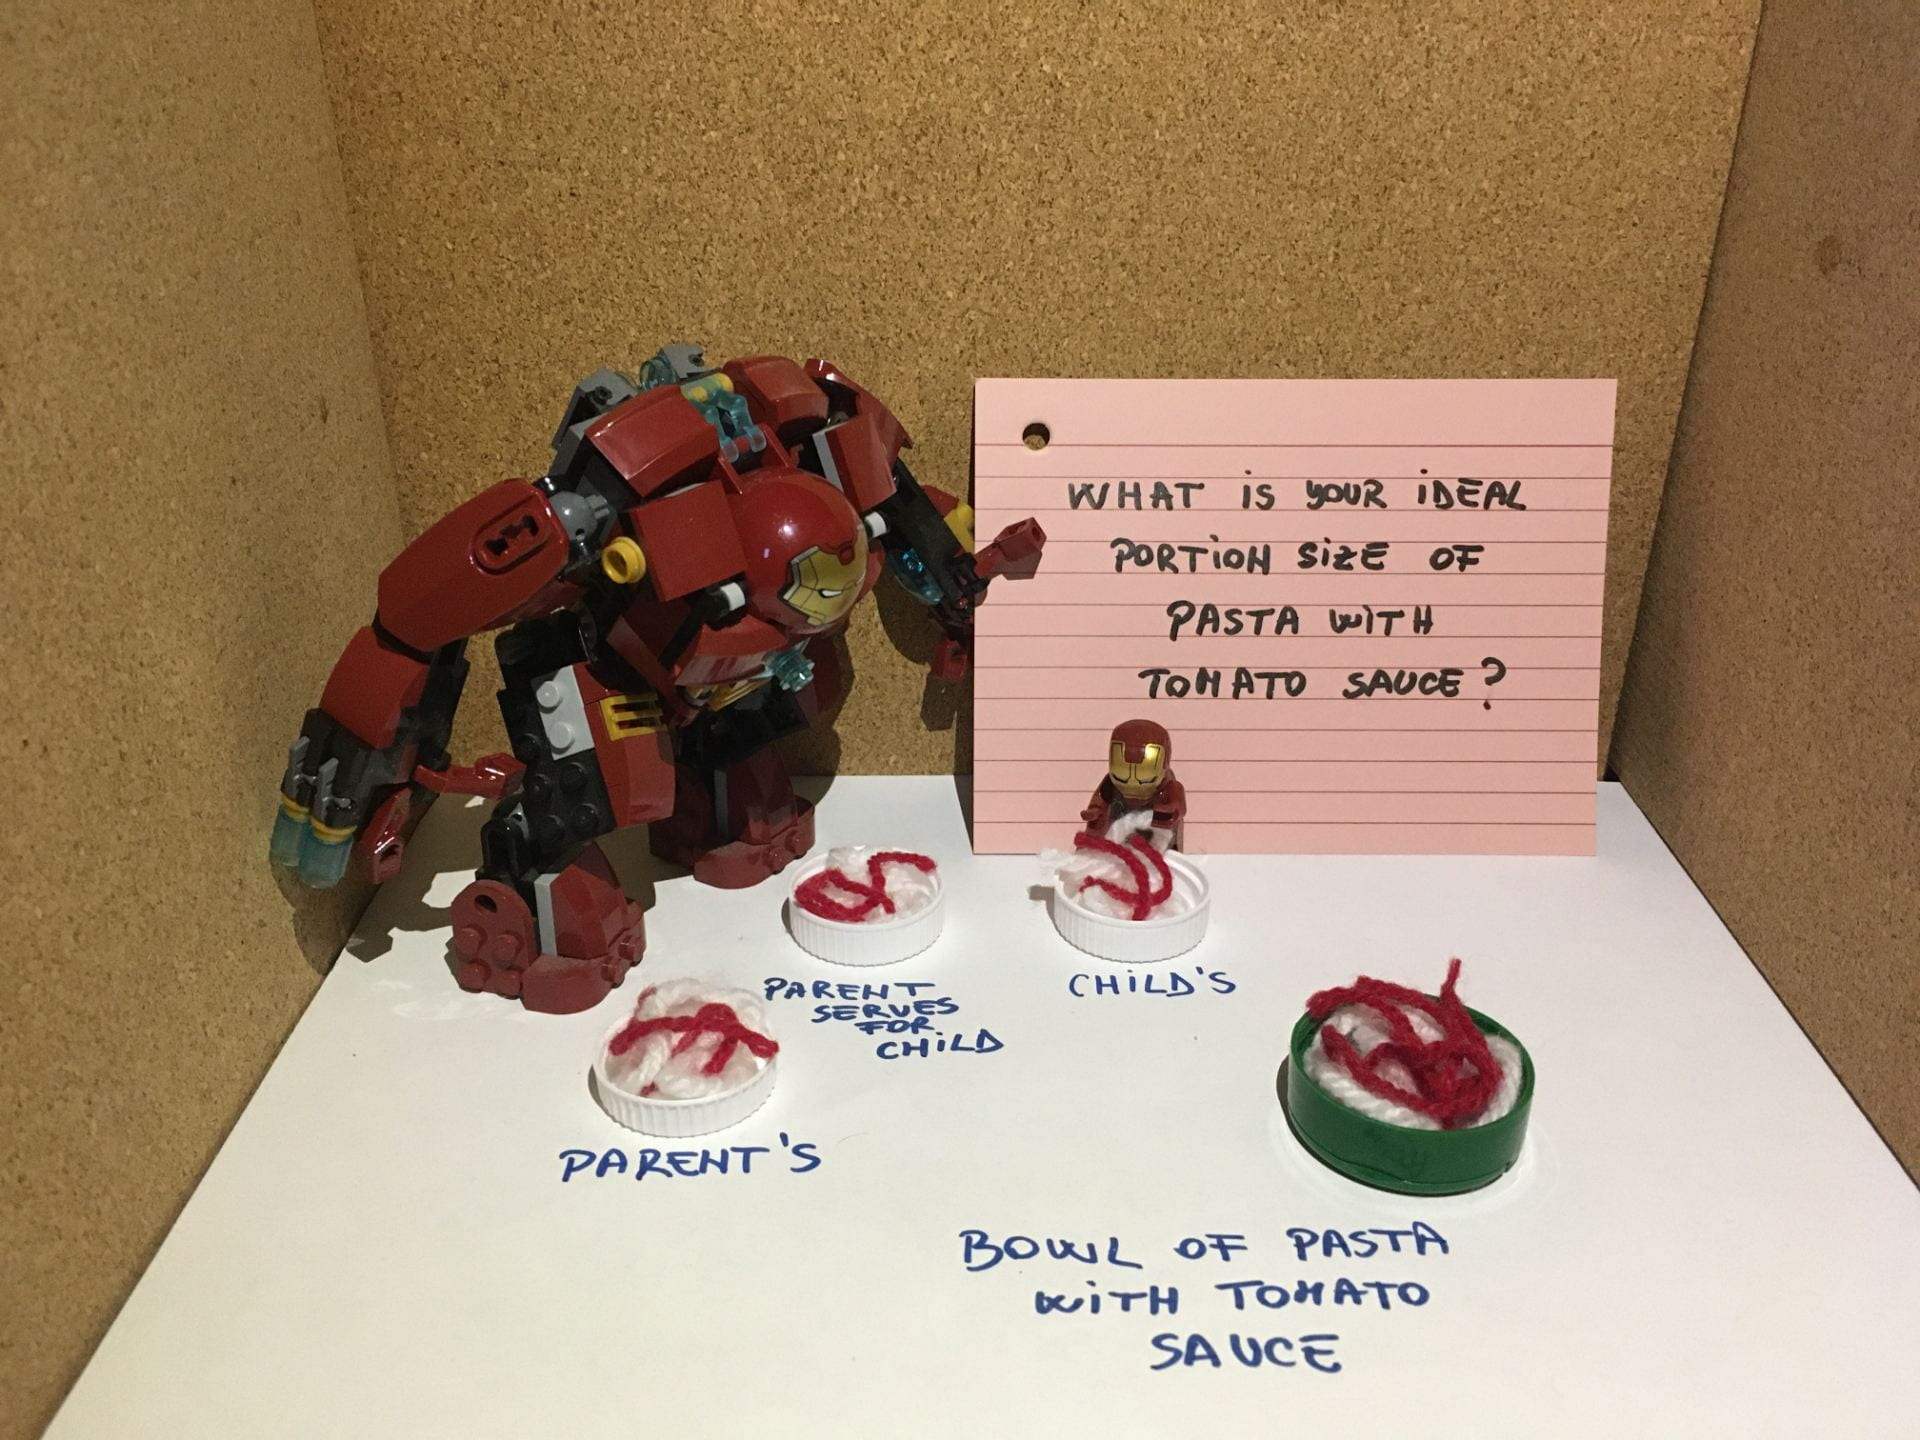 A large Iron Man toy holding a sign. The sign says 'What is your ideal portion size of pasta with tomato sauce?'. In front of this toy are four discs, each covered in wool - an effect designed to look like plates of food. The discs are labelled 'parent's', 'parent serves for child', 'child's' and 'bow;l of pasta with tomato sauce'. Next to the child's disc is a LEGO Iron Man.